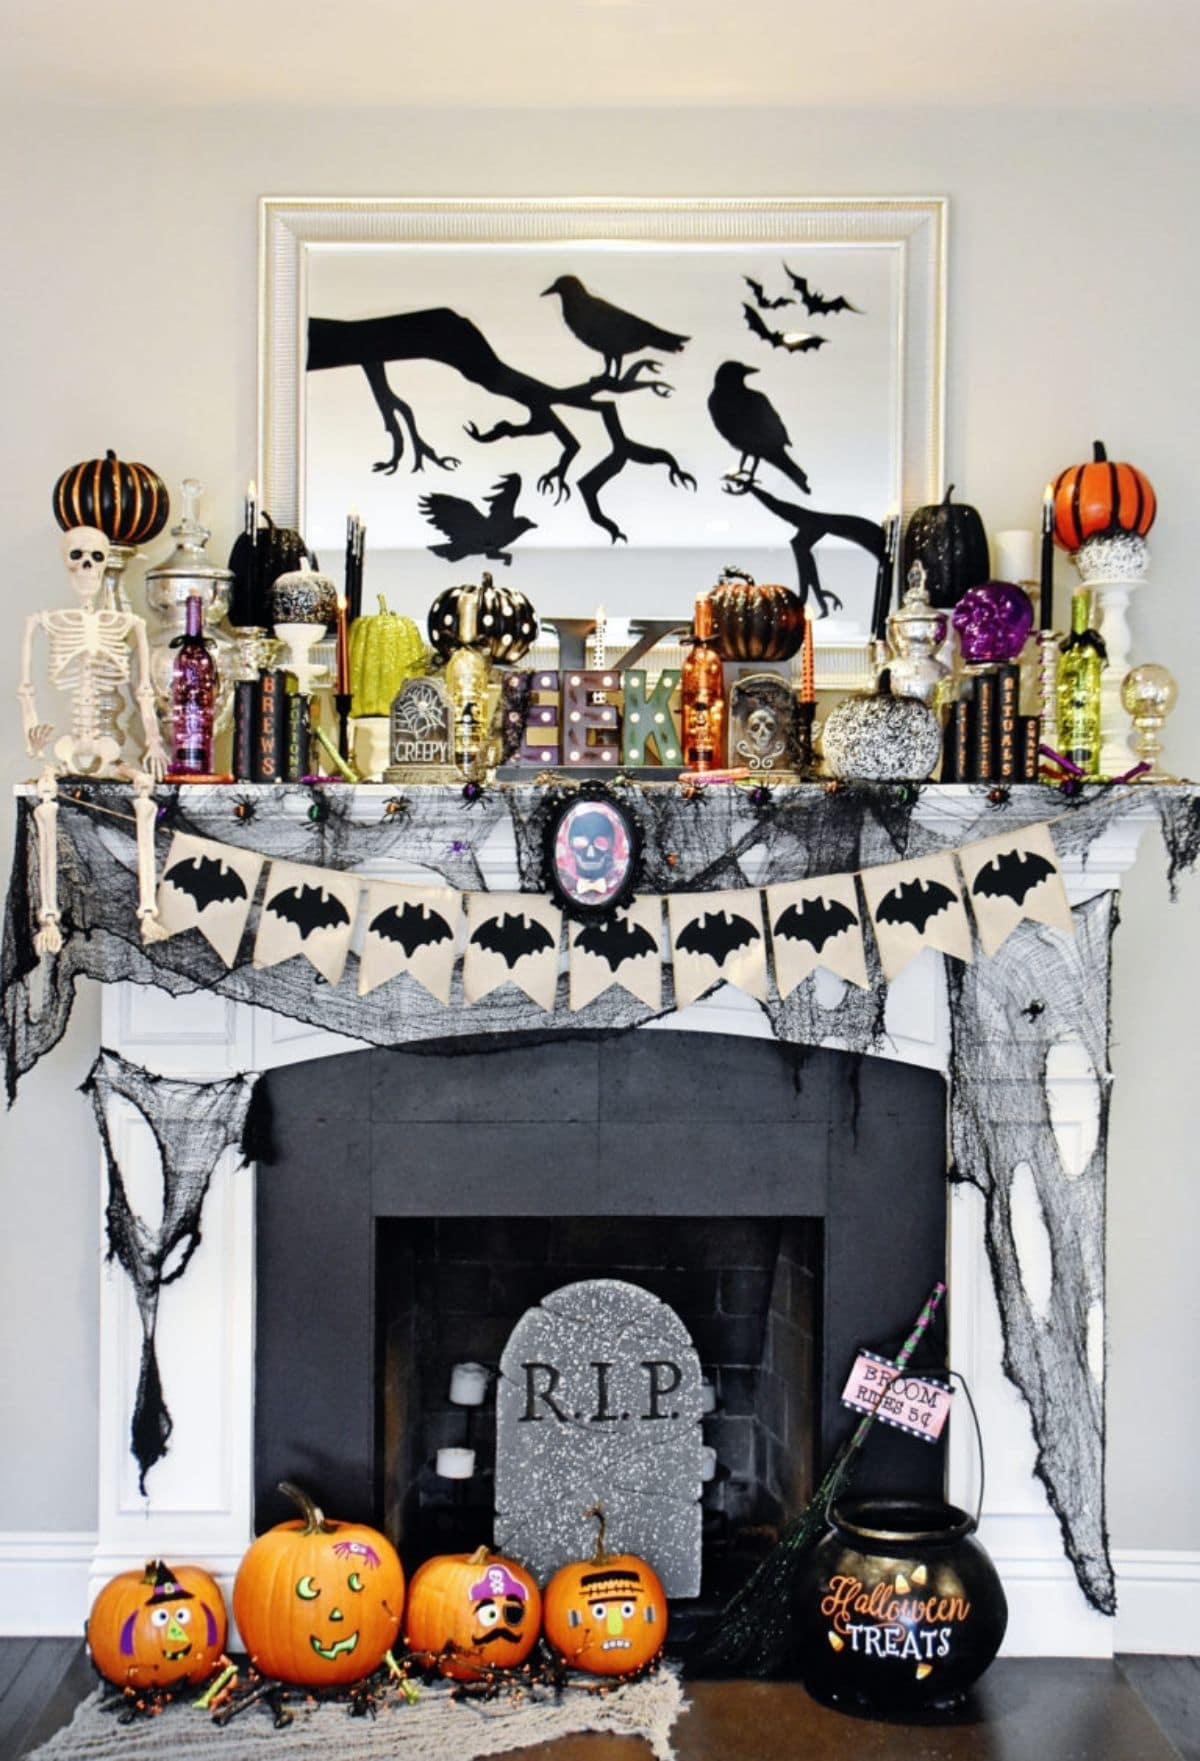 mantel with RIP headstone and lots of pumpkins